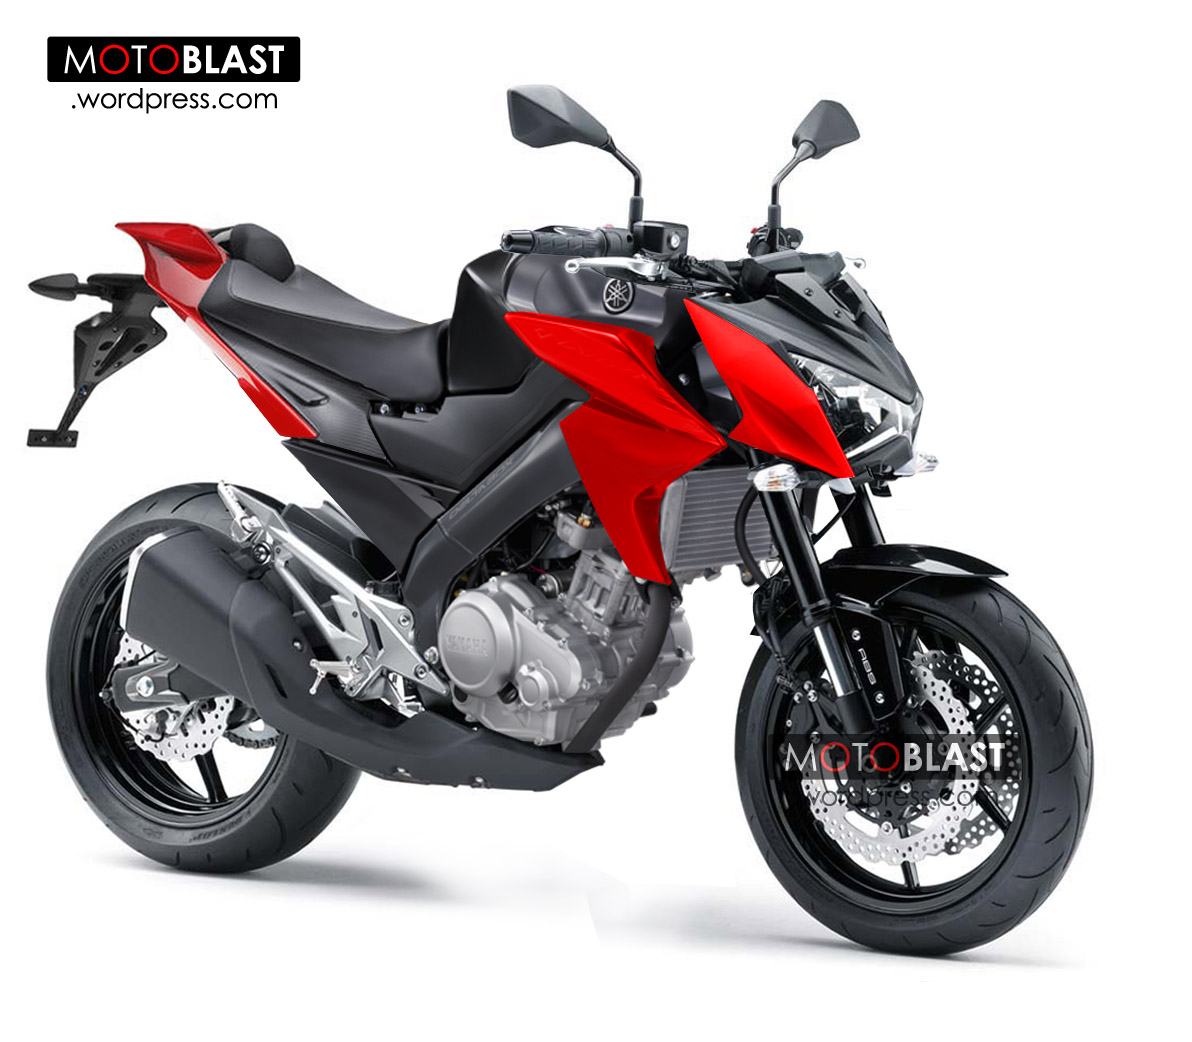 New Vixion Modif Street Fighter Monster!! Gagah bin Guanteeeng tenaaan